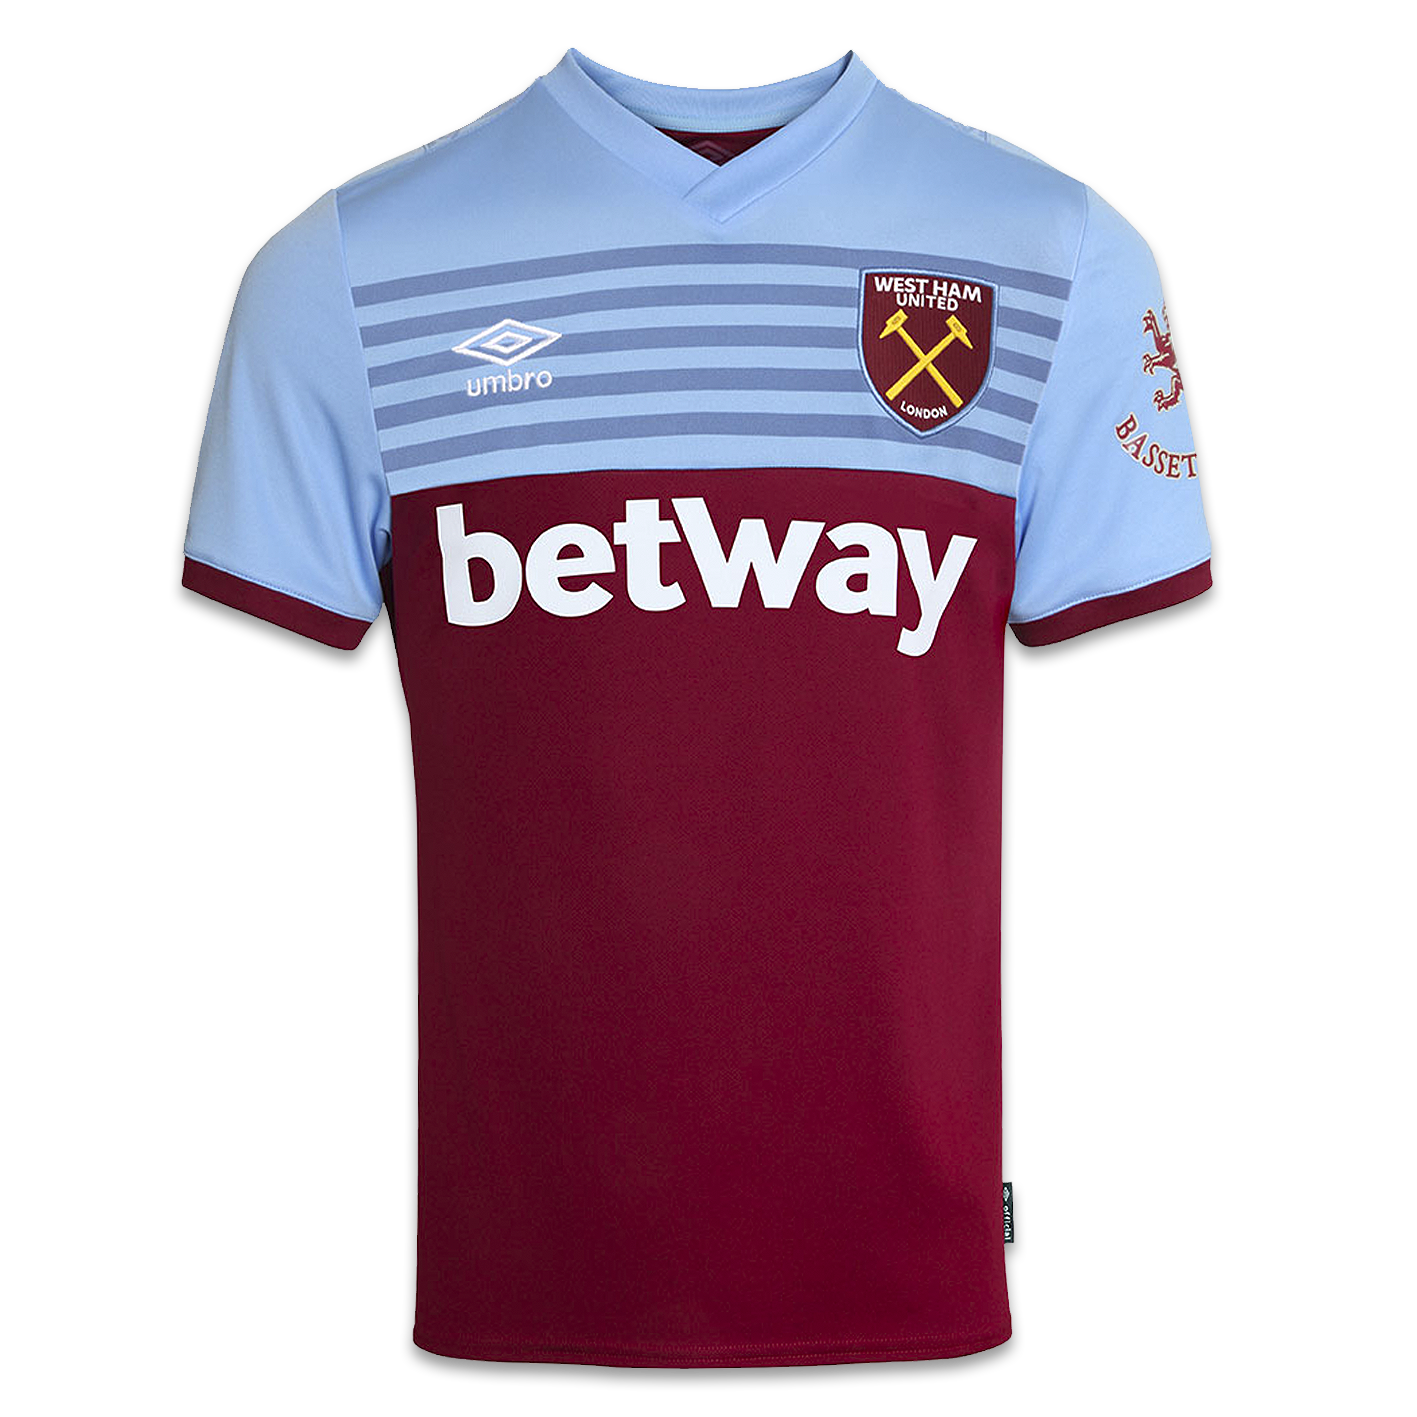 West Ham United 2019 20 Jersey Home West Ham West Ham United Football Shirts